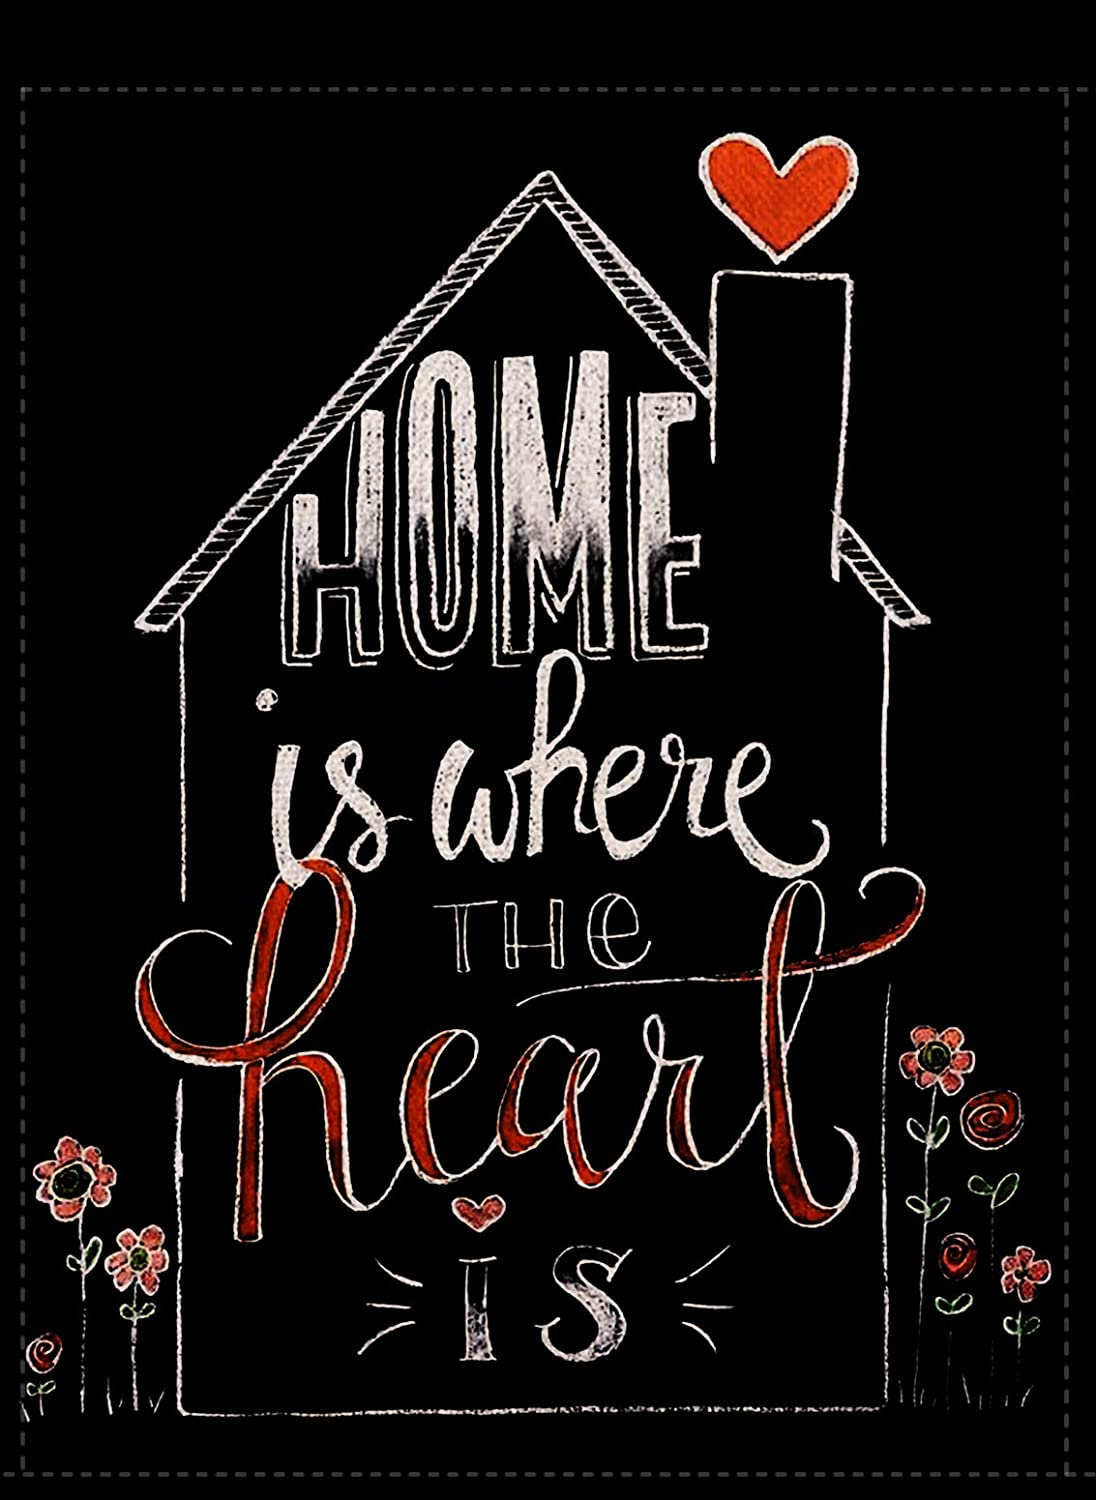 Furiaz Home is Where The Heart is Valentine's Day Garden Flag, Decorative House Yard Outdoor Flag Love Hearts Flowers, Burlap Spring Summer Outside Holiday Decorations Home Decor Flag Black 12.5 x 18